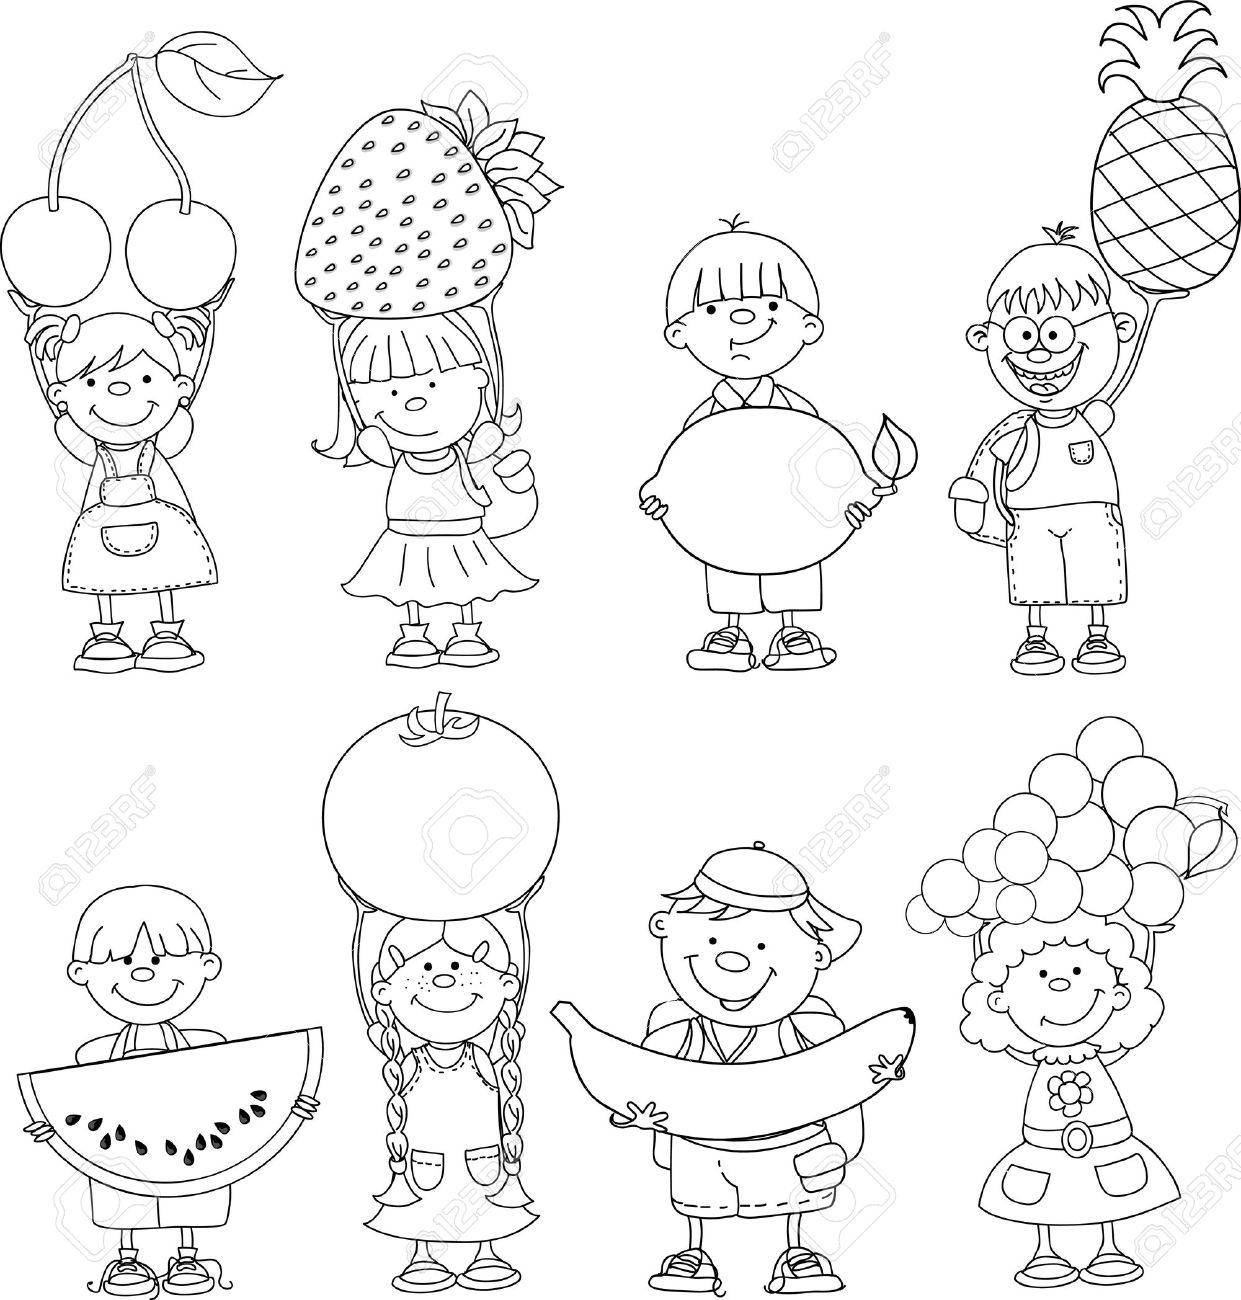 cartoon children with fruits and vegetable royalty free cliparts